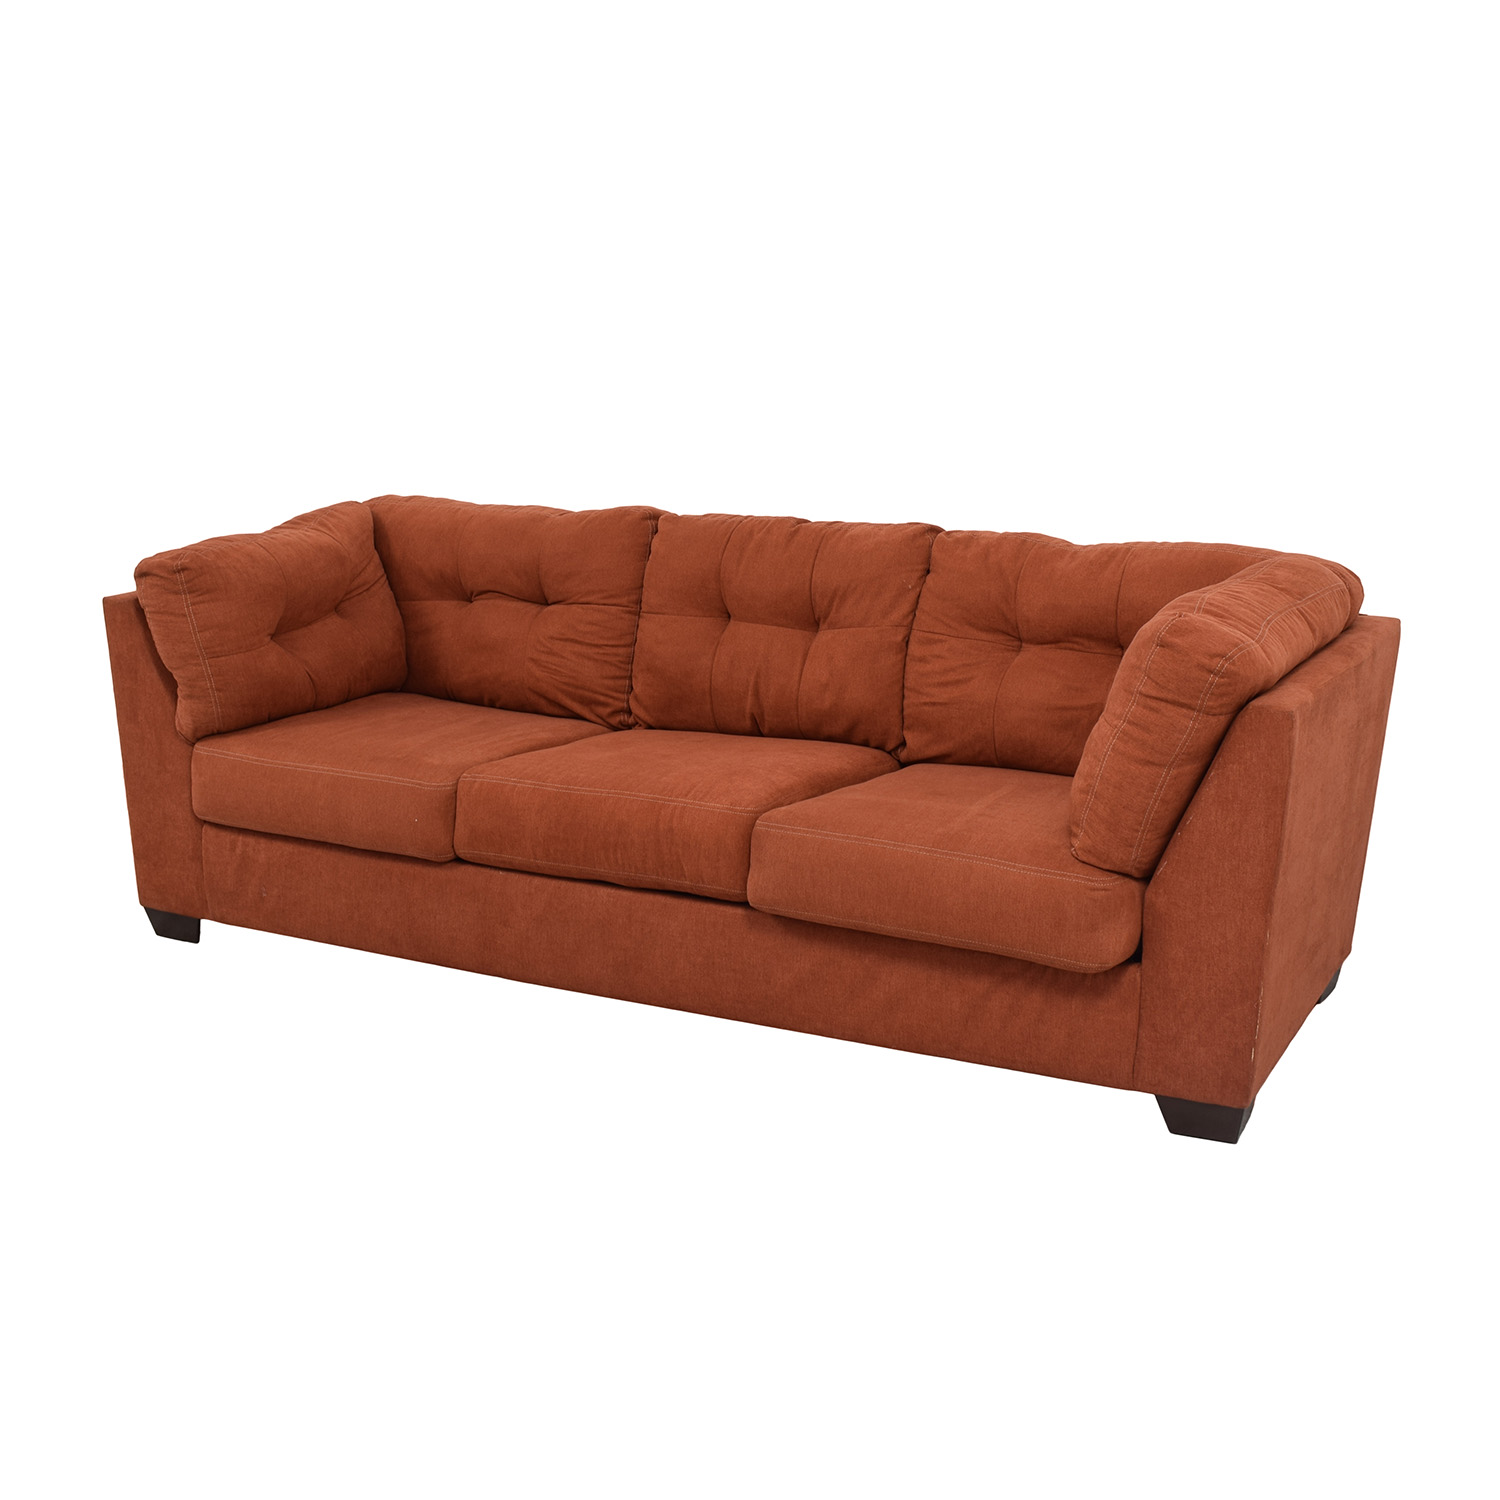 Ashley Furniture Delta City Rust Tufted Sofa For